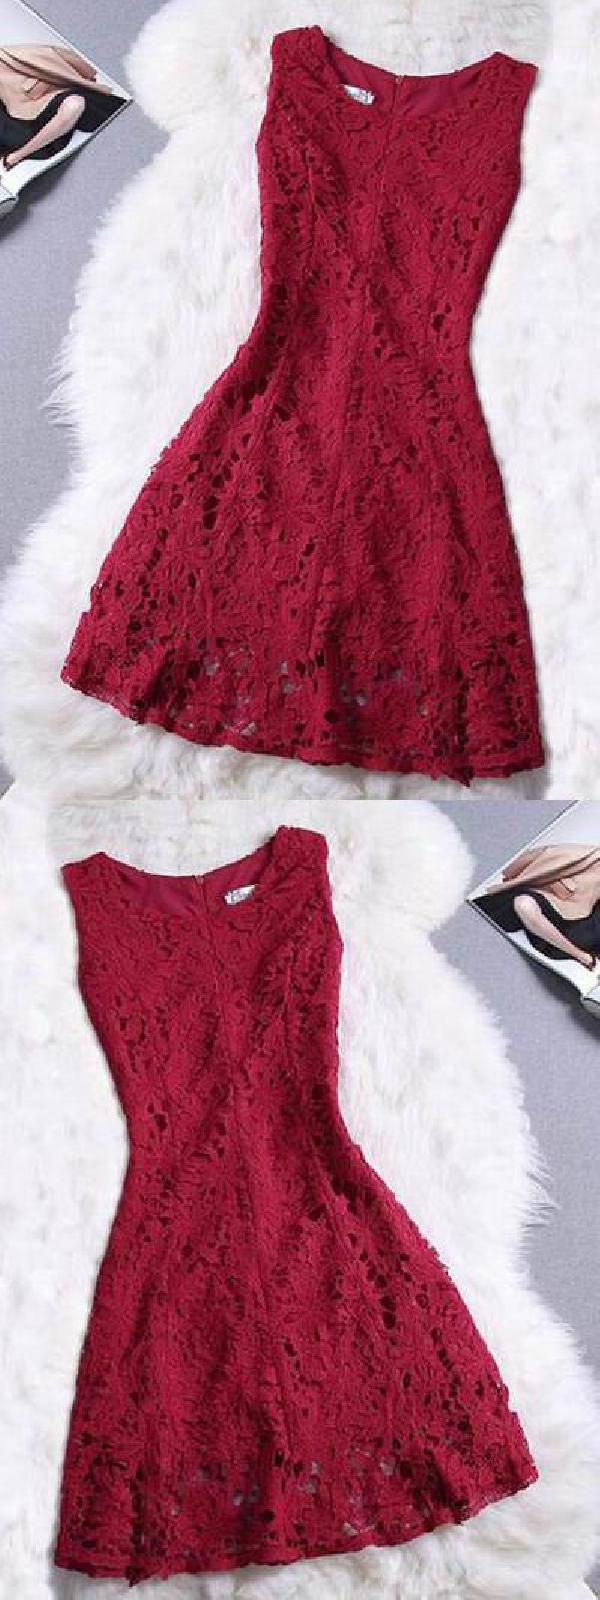 Prom dresses red prom dresses lace red lace homecoming dress